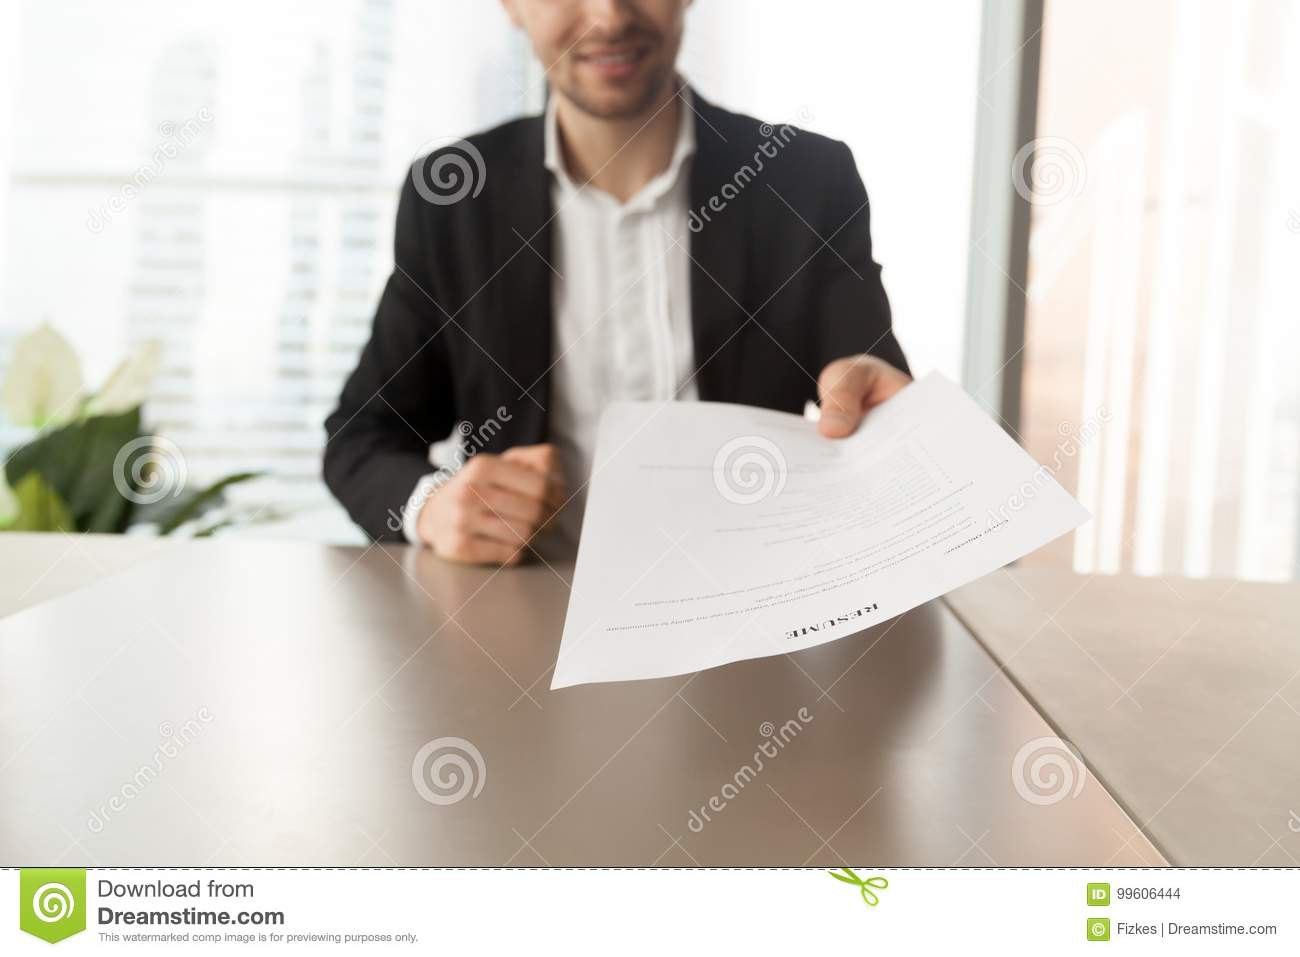 Smiling Job Applicant Handing Over Resume To Recruiter During In